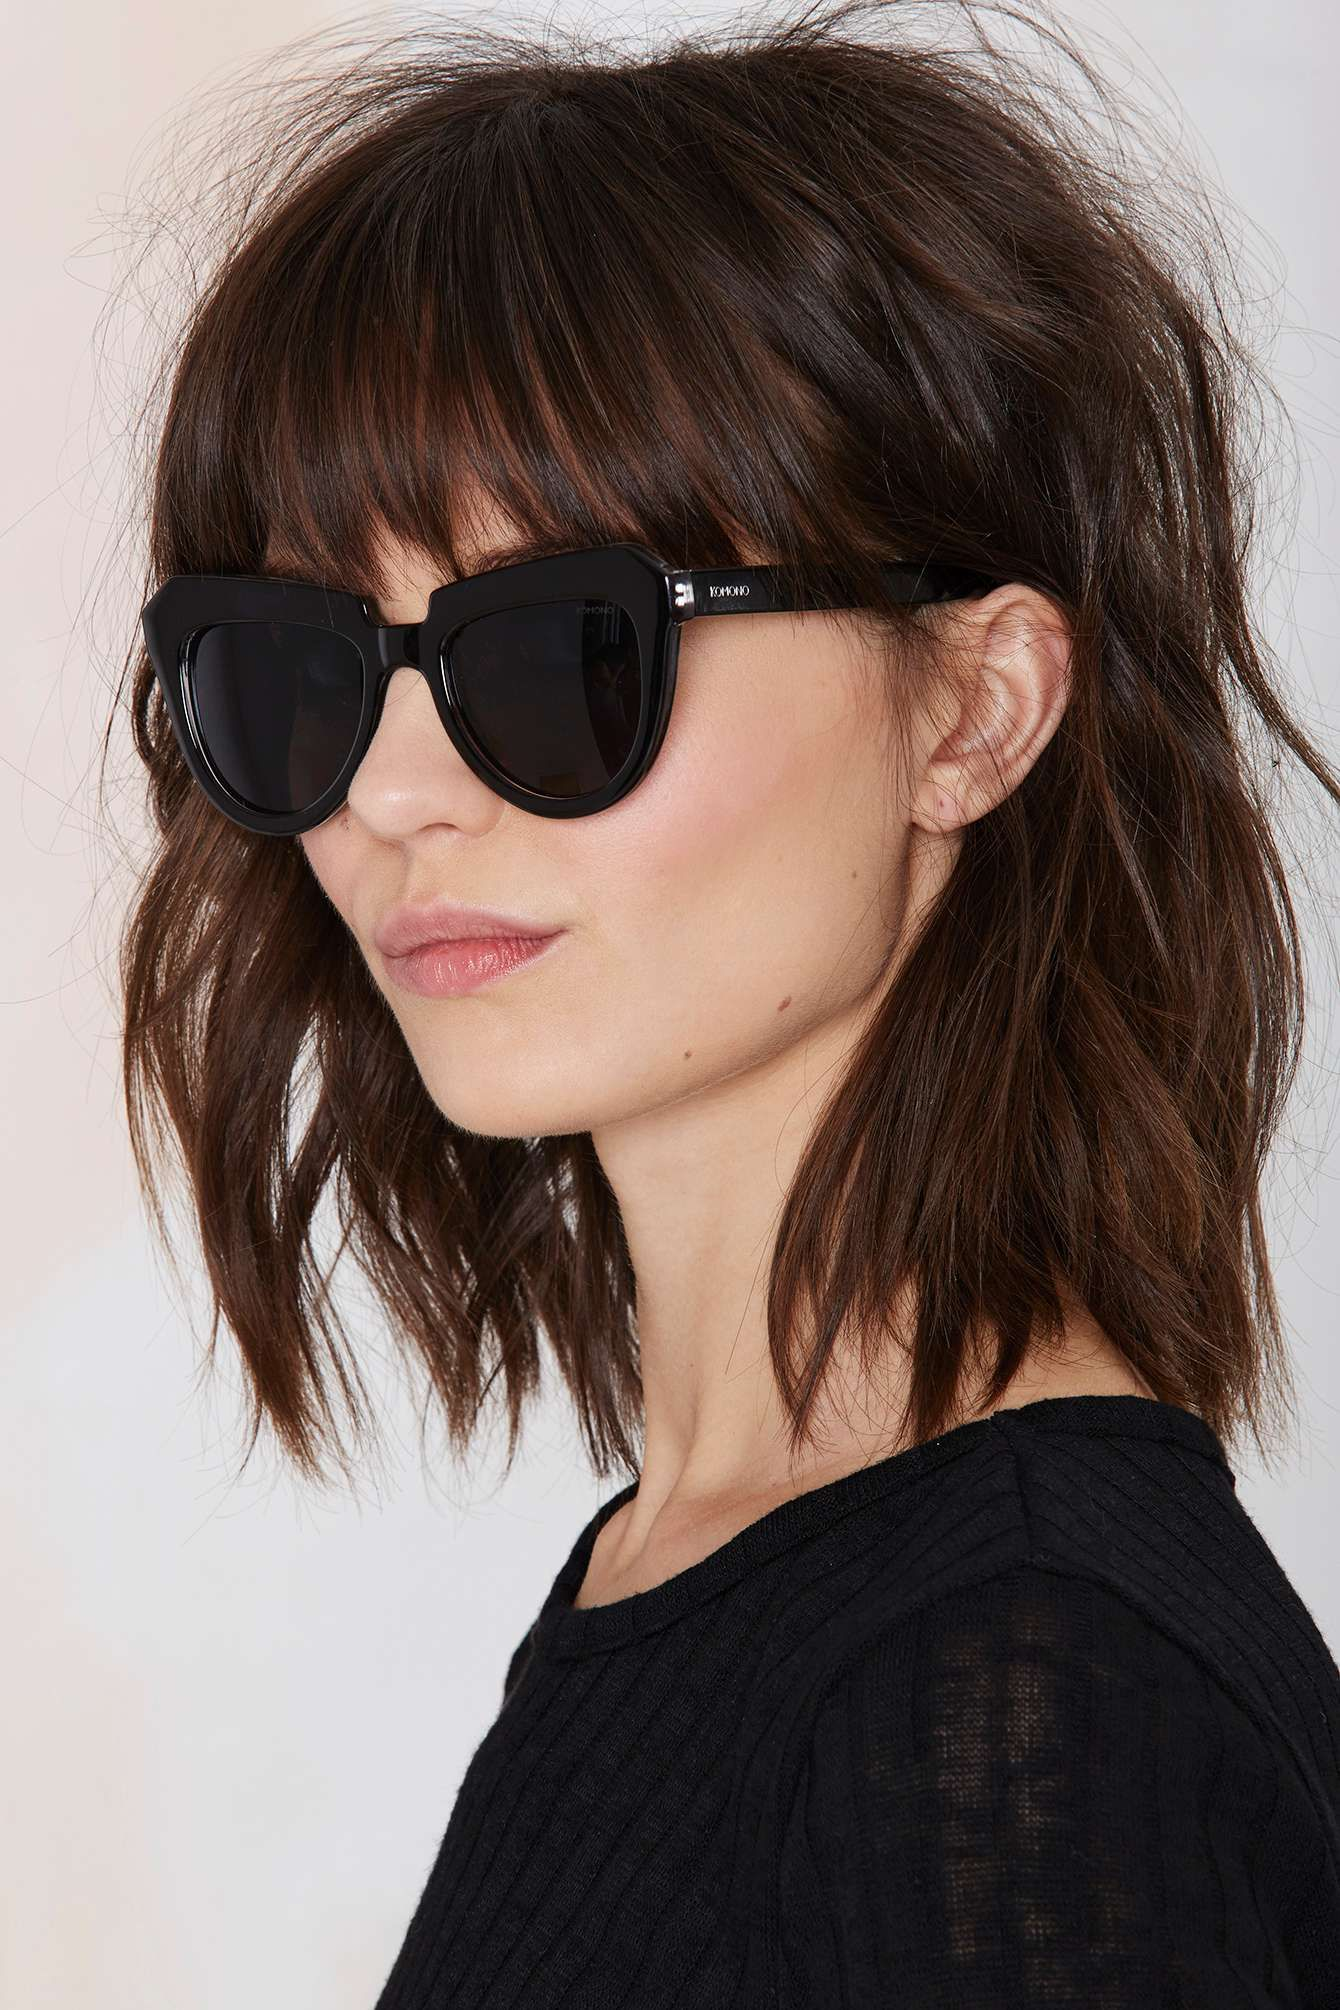 nice haircut mystery lady perfect because it shows it with glasses